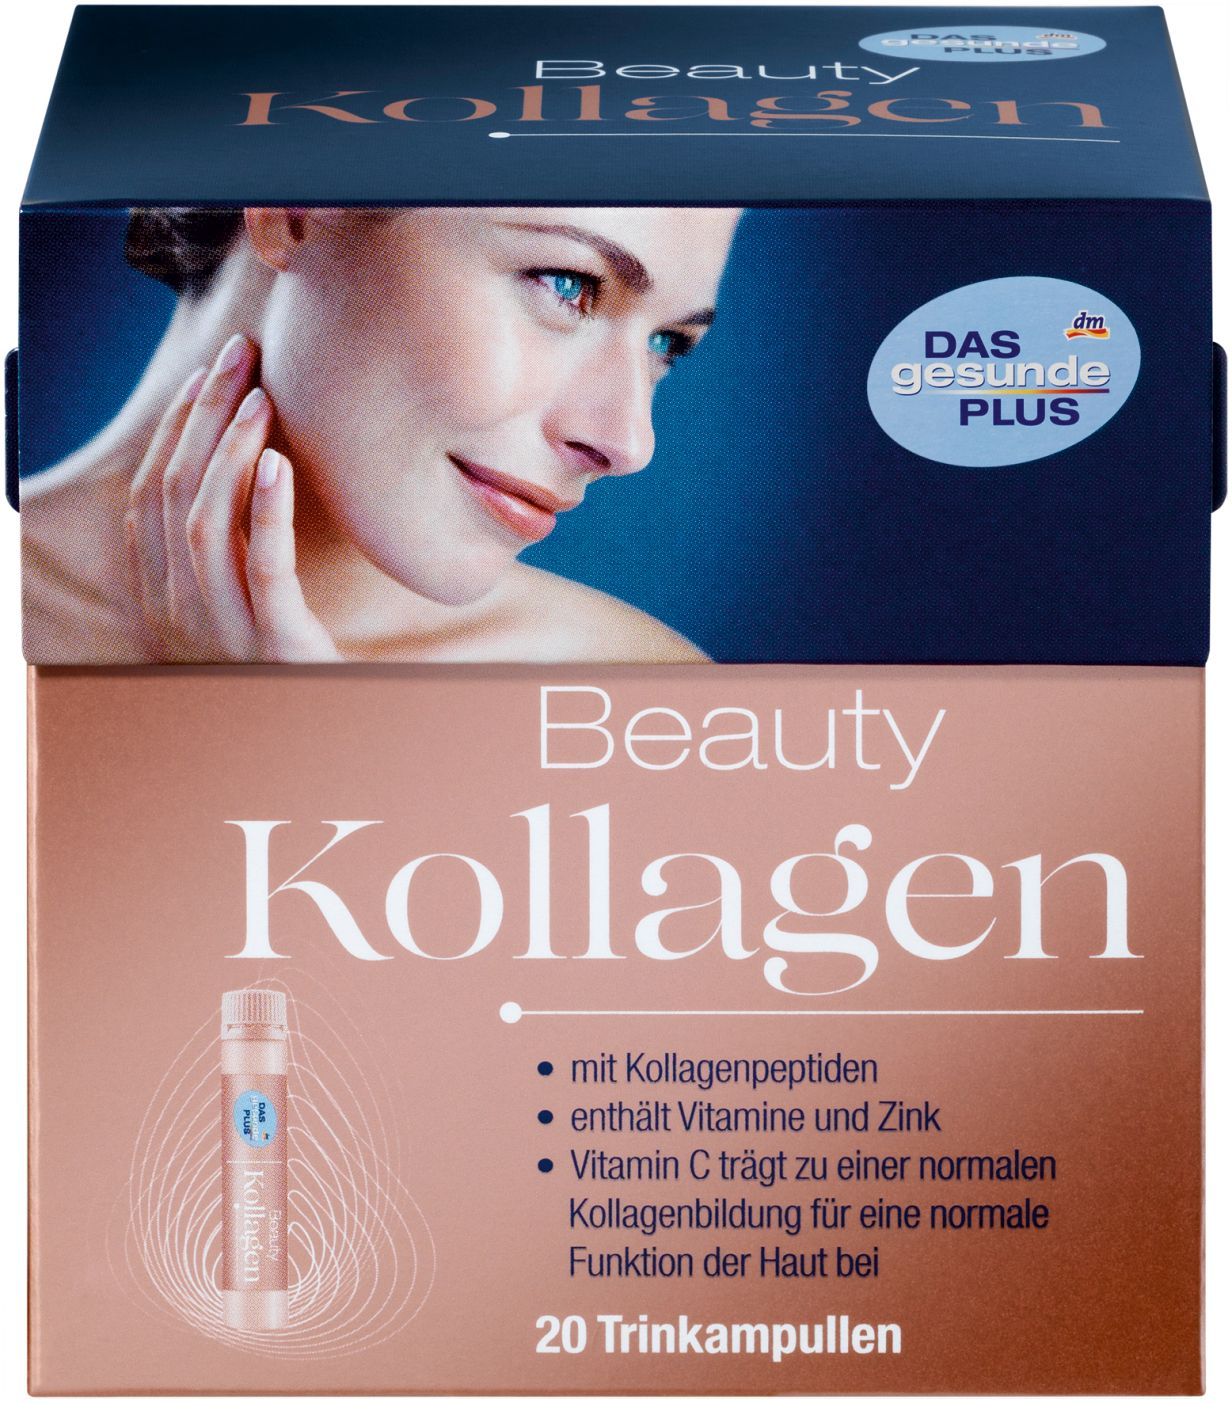 DAS gesunde PLUS Beauty Kollagen